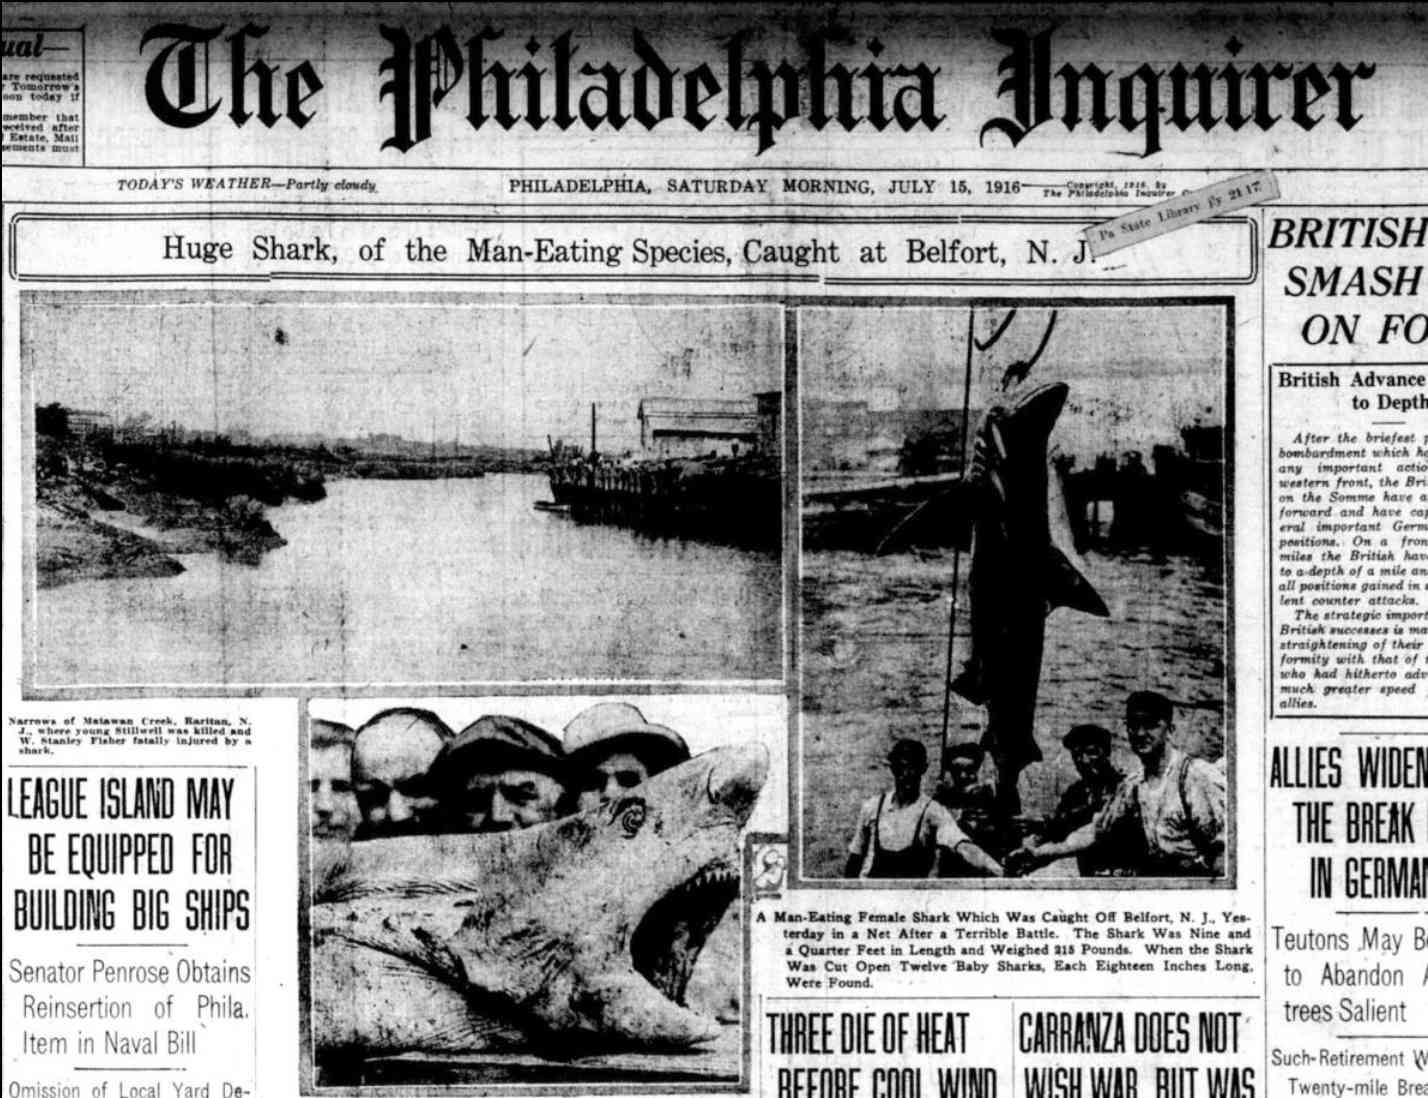 Philadelphia Inquirer front page from July 15, 1916